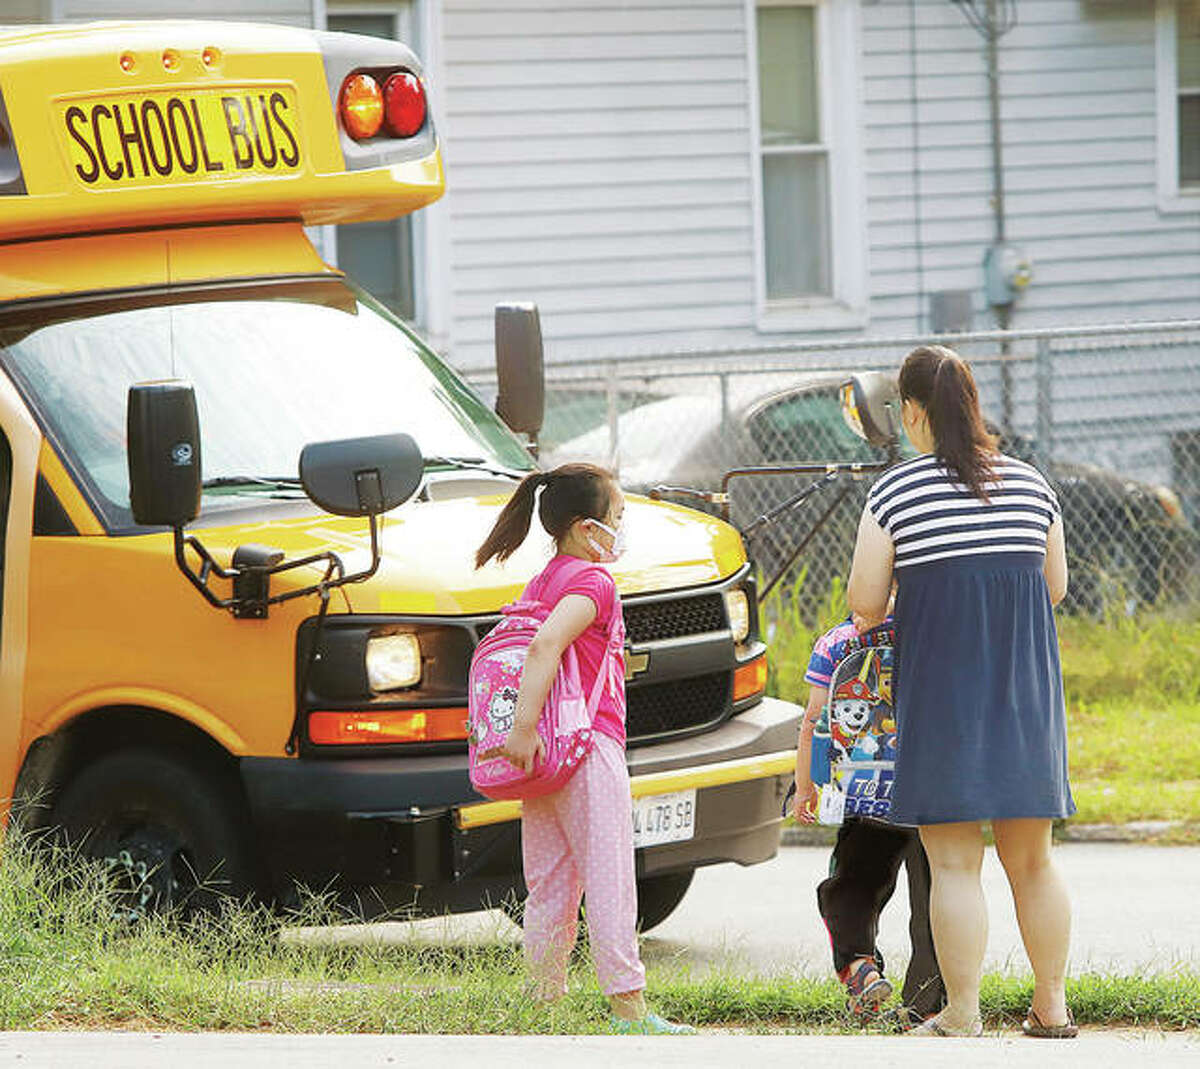 With crowds still limited by the COVID-19 delta variant, schools have become a good place to see the increasing diversity in the Riverbend, such as this family meeting a school bus in Alton on Seminary Street.